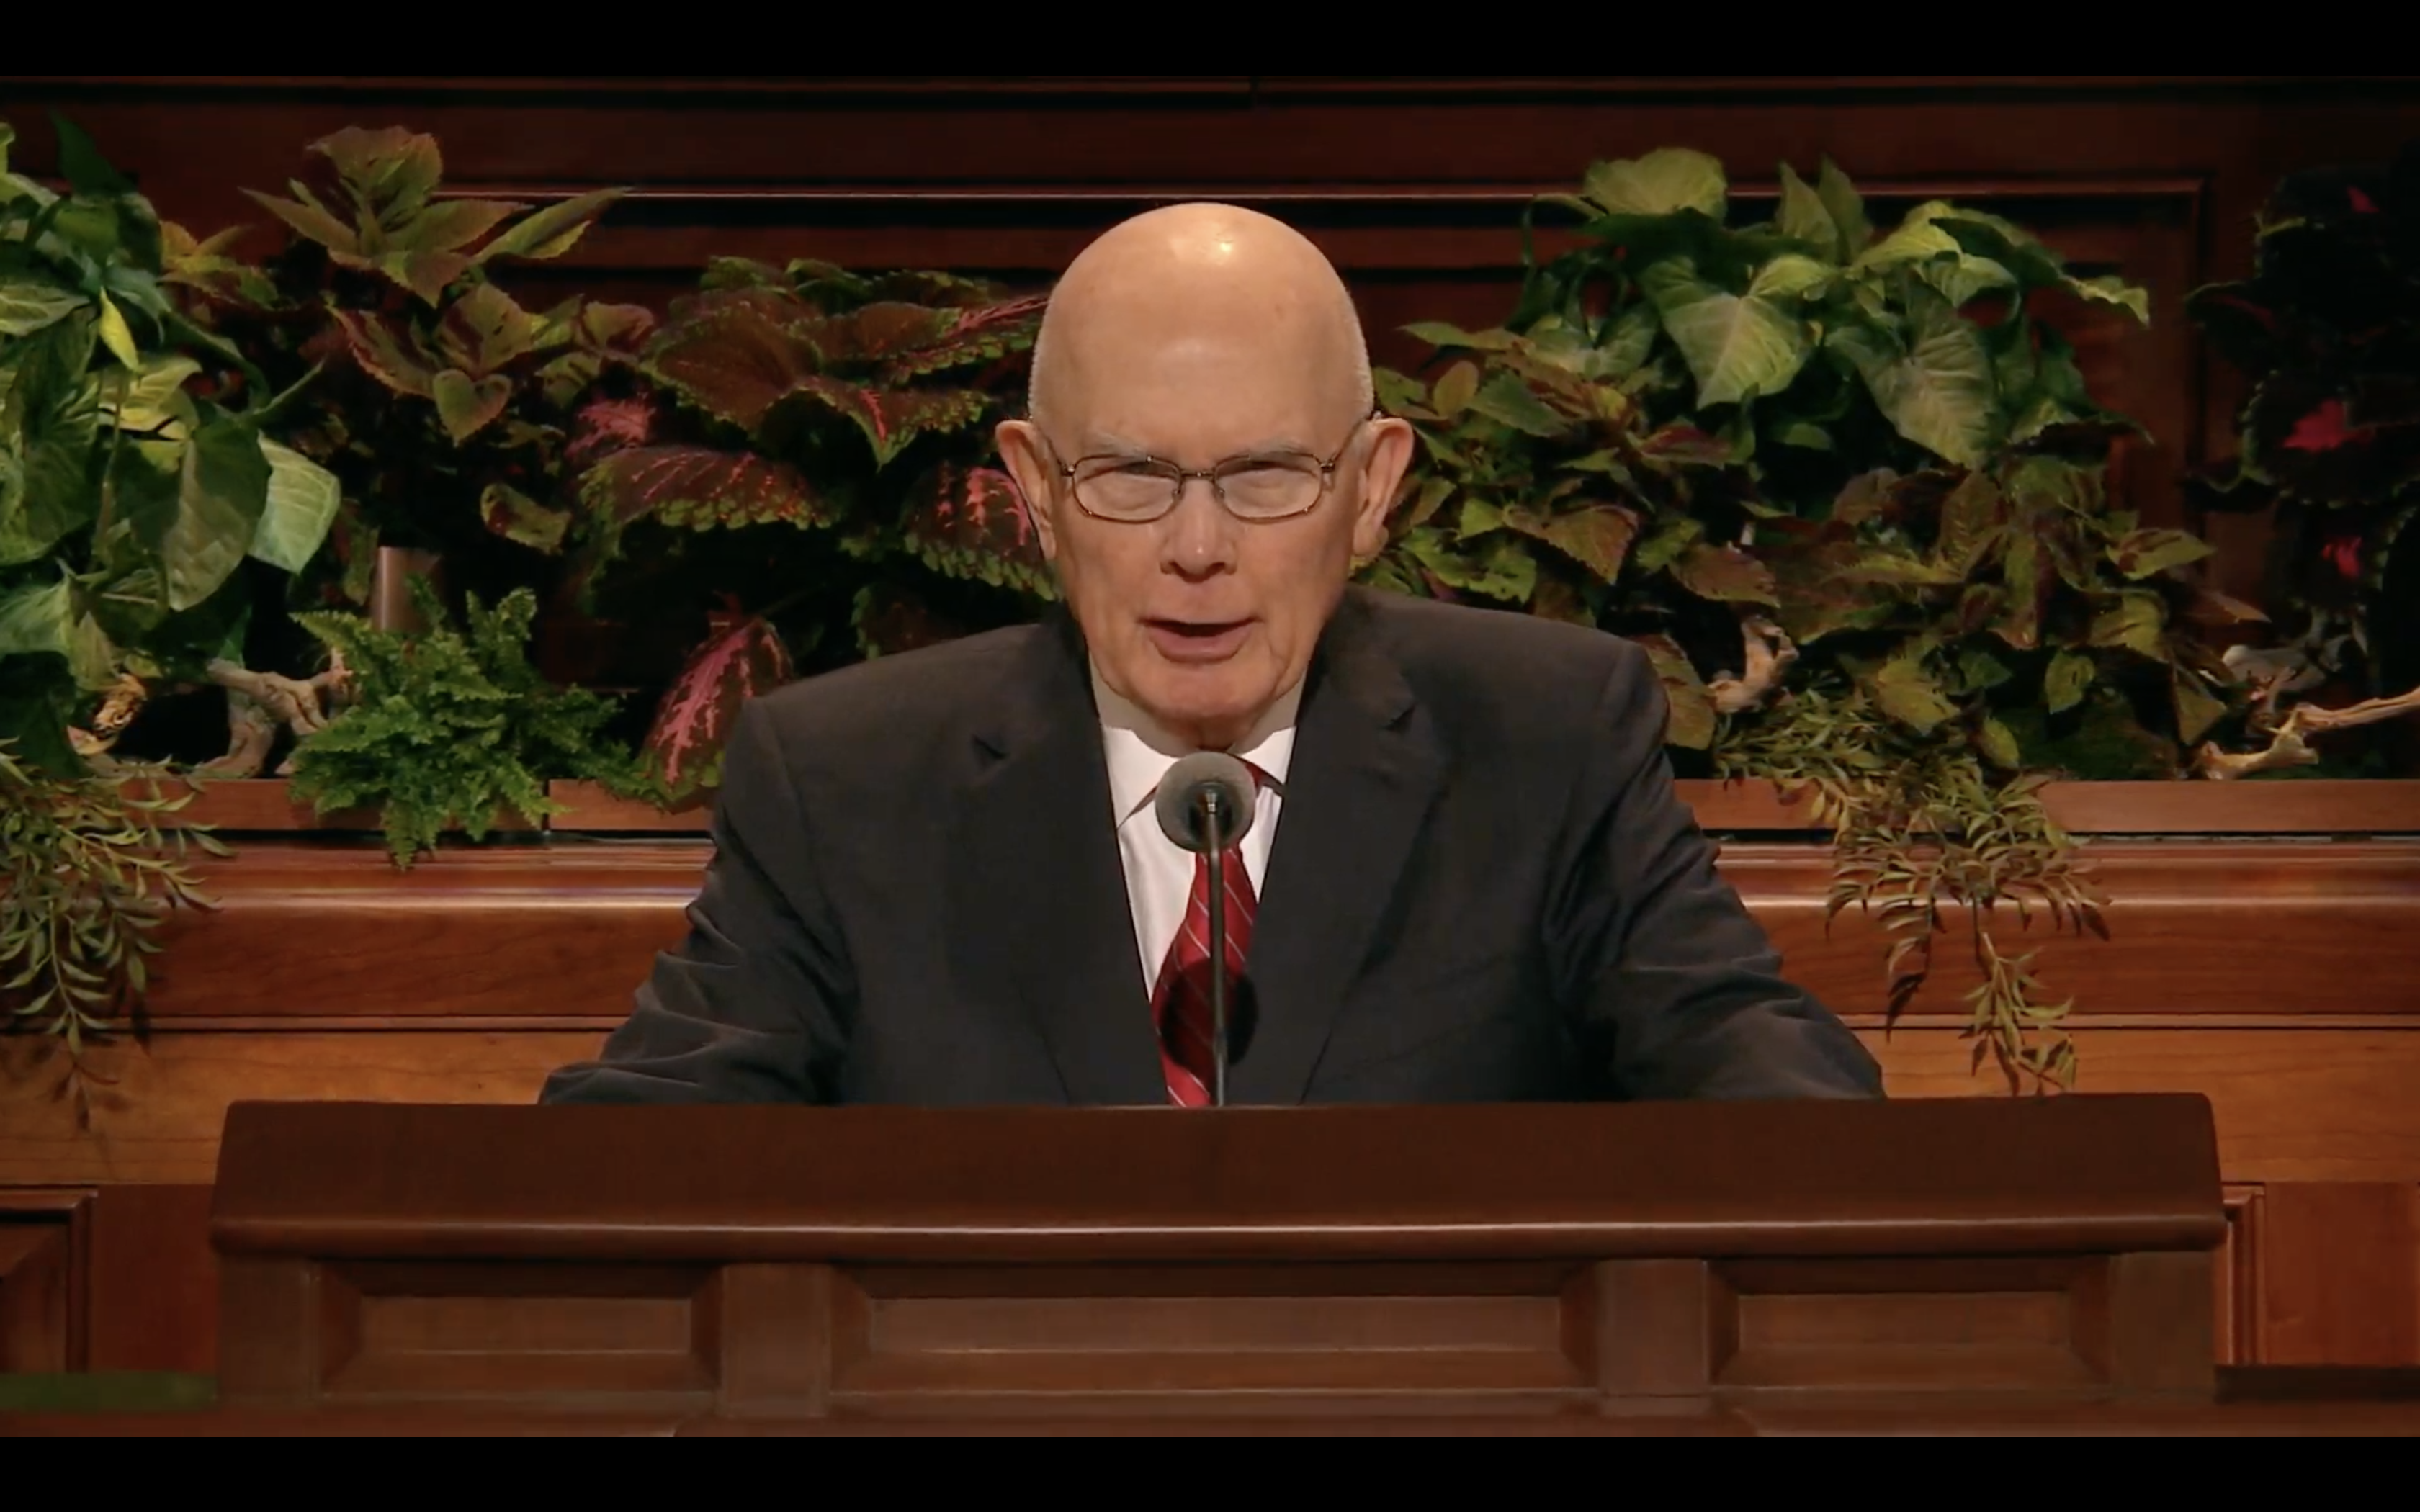 President Dallin H. Oaks, first counselor in the First Presidency, speaks during the Saturday morning session in the 189th Semiannual General Conference of the Church on Oct. 5, 2019.